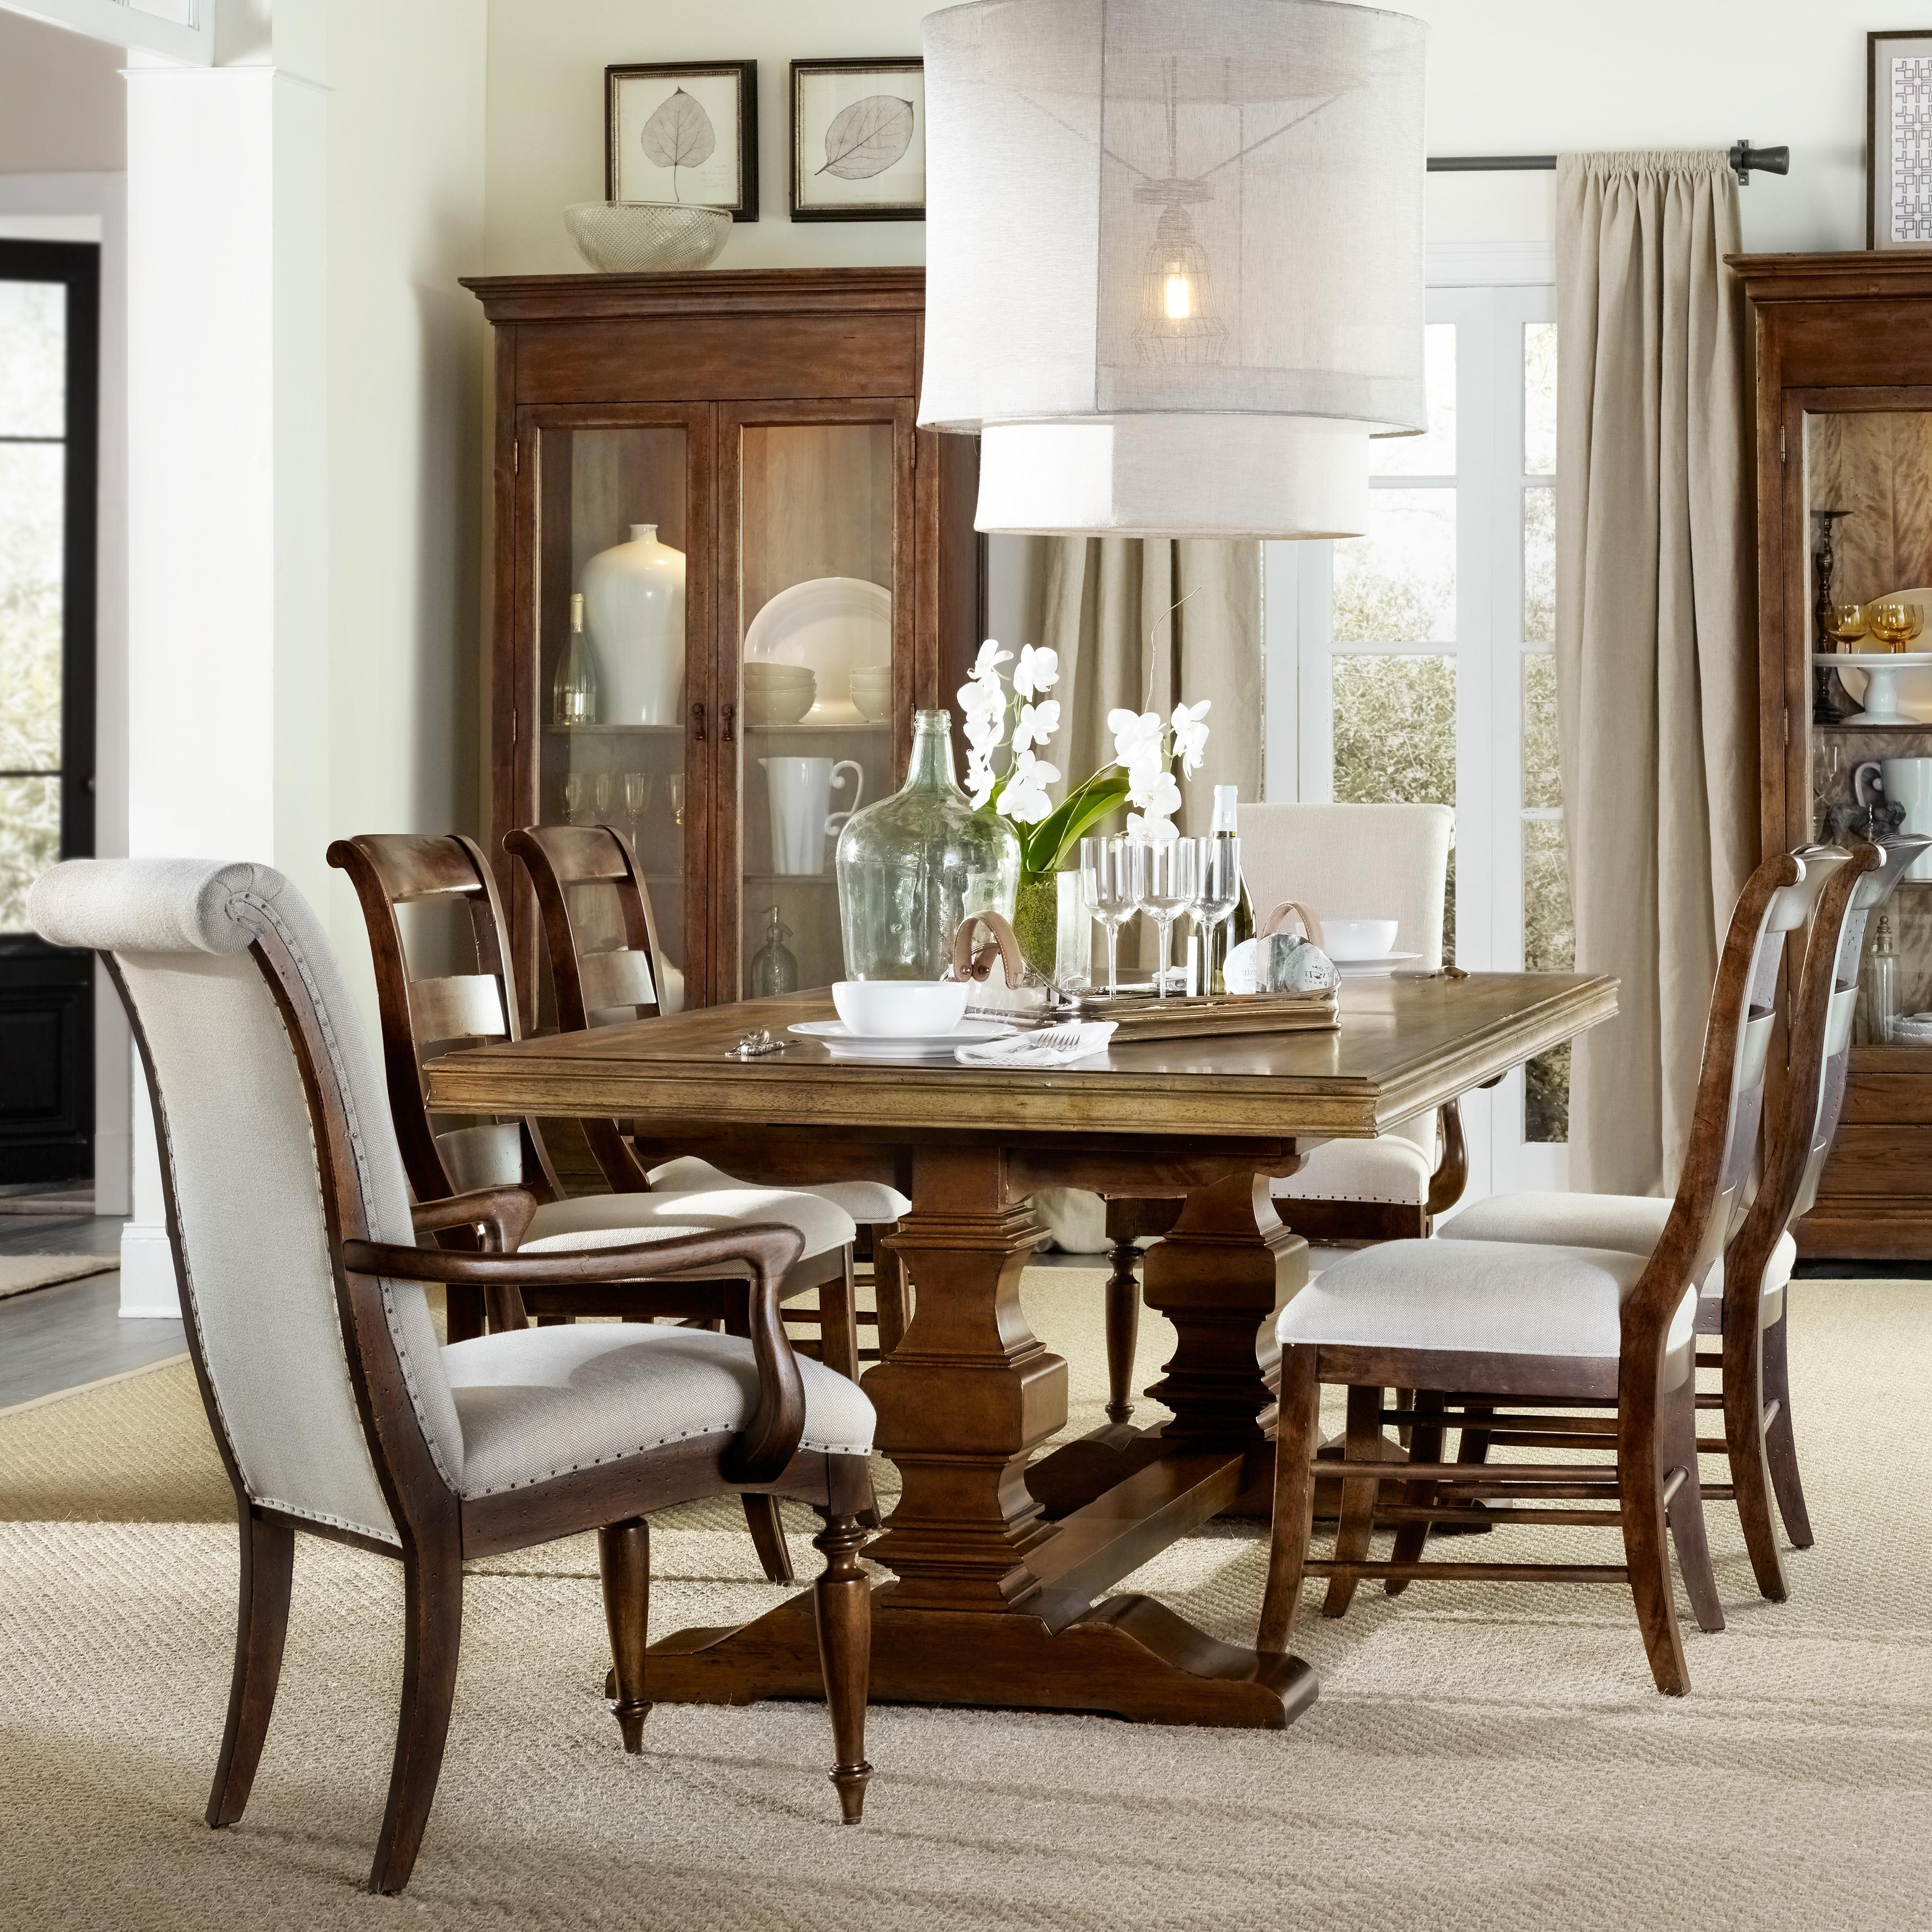 Wolf And Pertaining To Parquet 7 Piece Dining Sets (View 3 of 25)